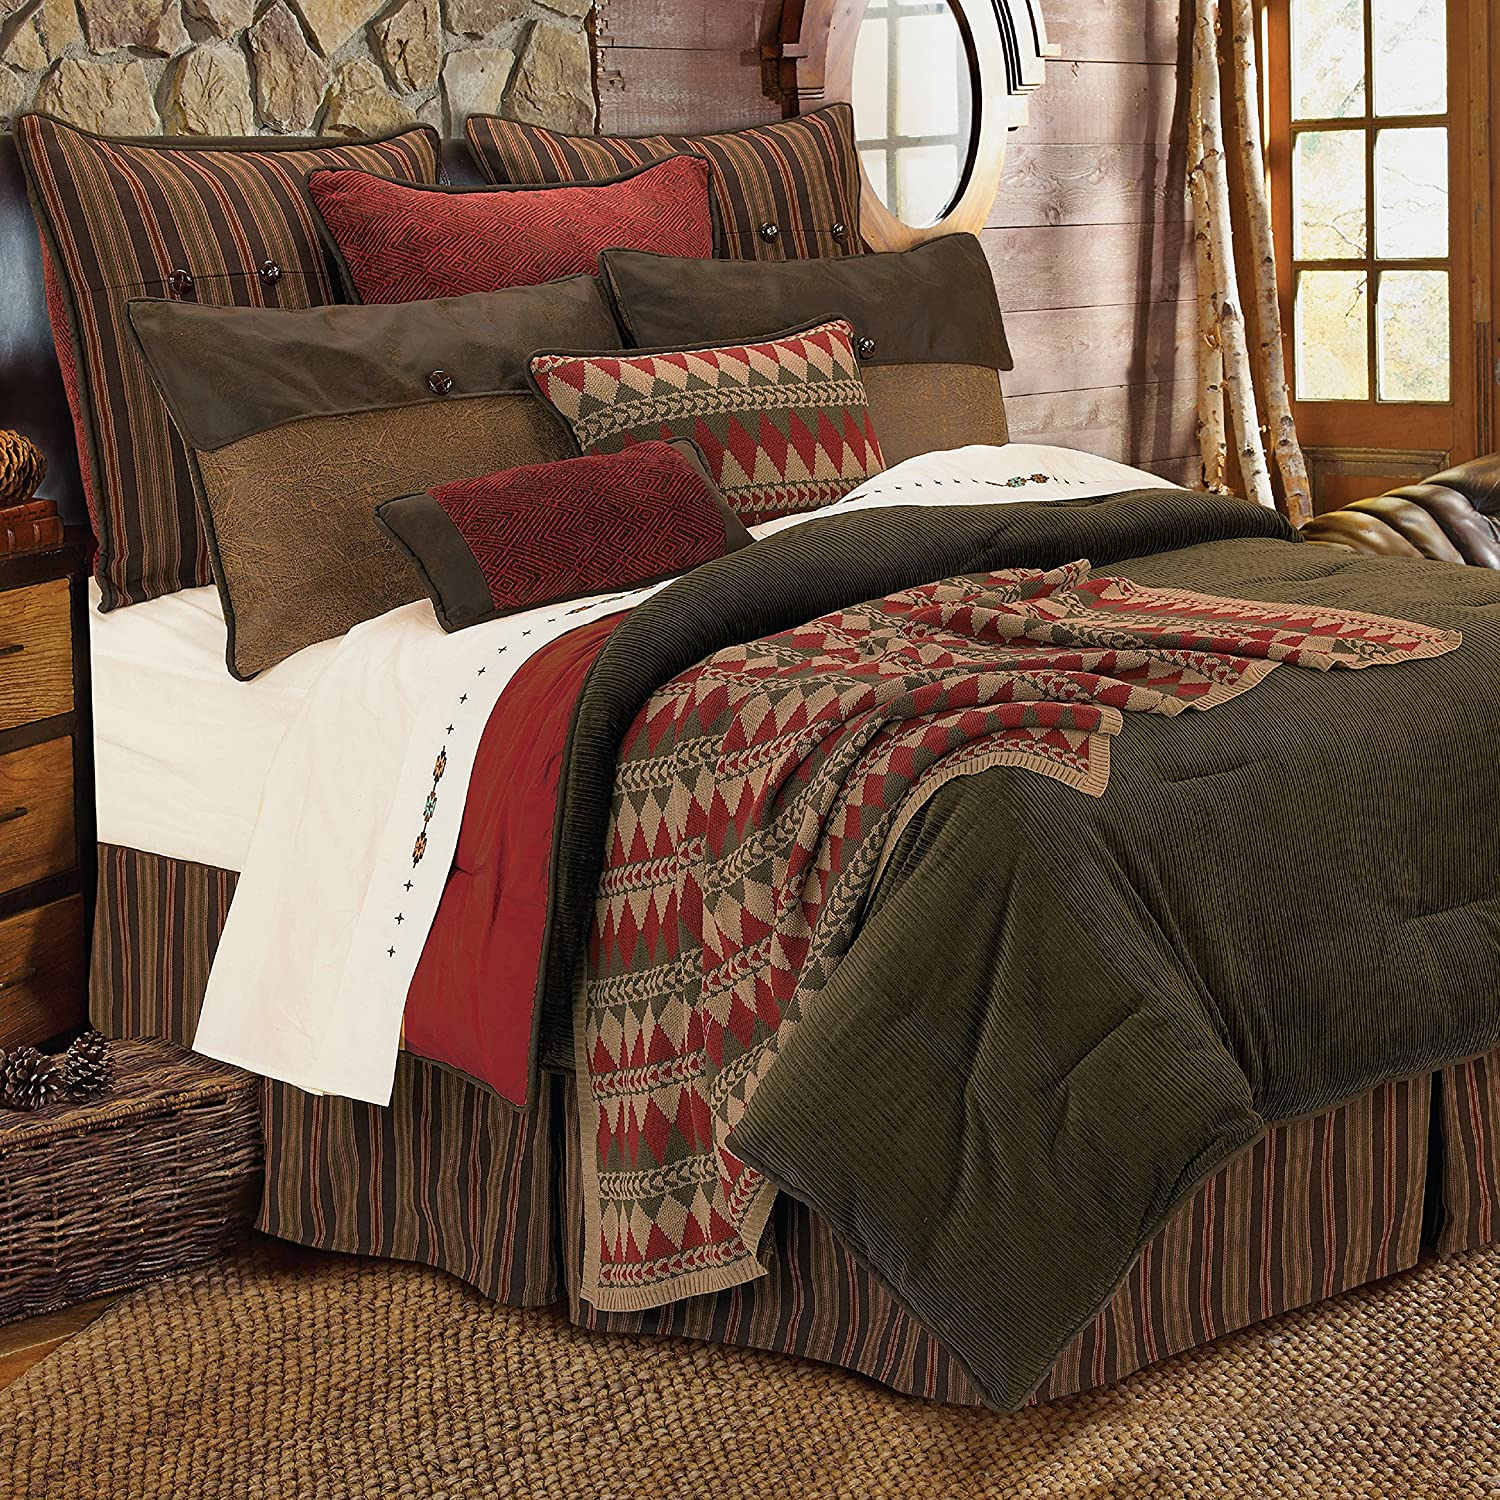 patterns quilt pinterest rag s quilts canada covers info country hrcouncil lodge cabin rustic sets duvet